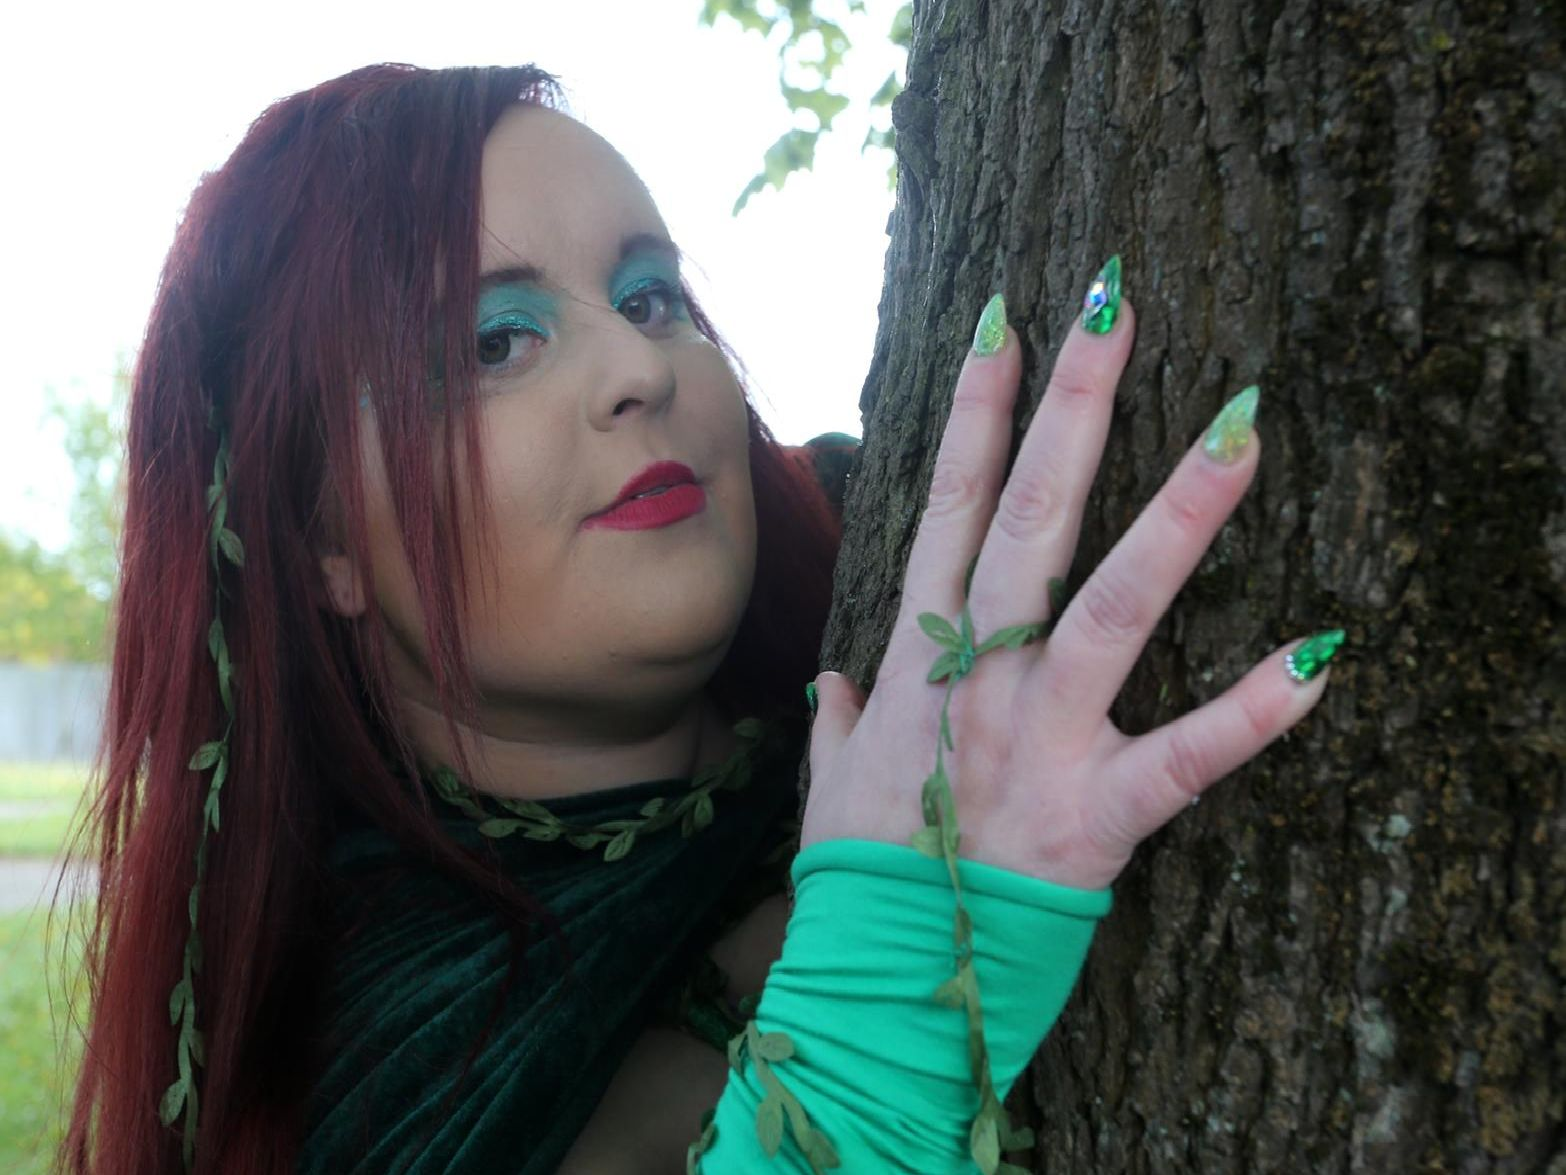 Emily Blount dressed as DC Comics villain Poison Ivy for Mansfield Comic Con on Saturday.